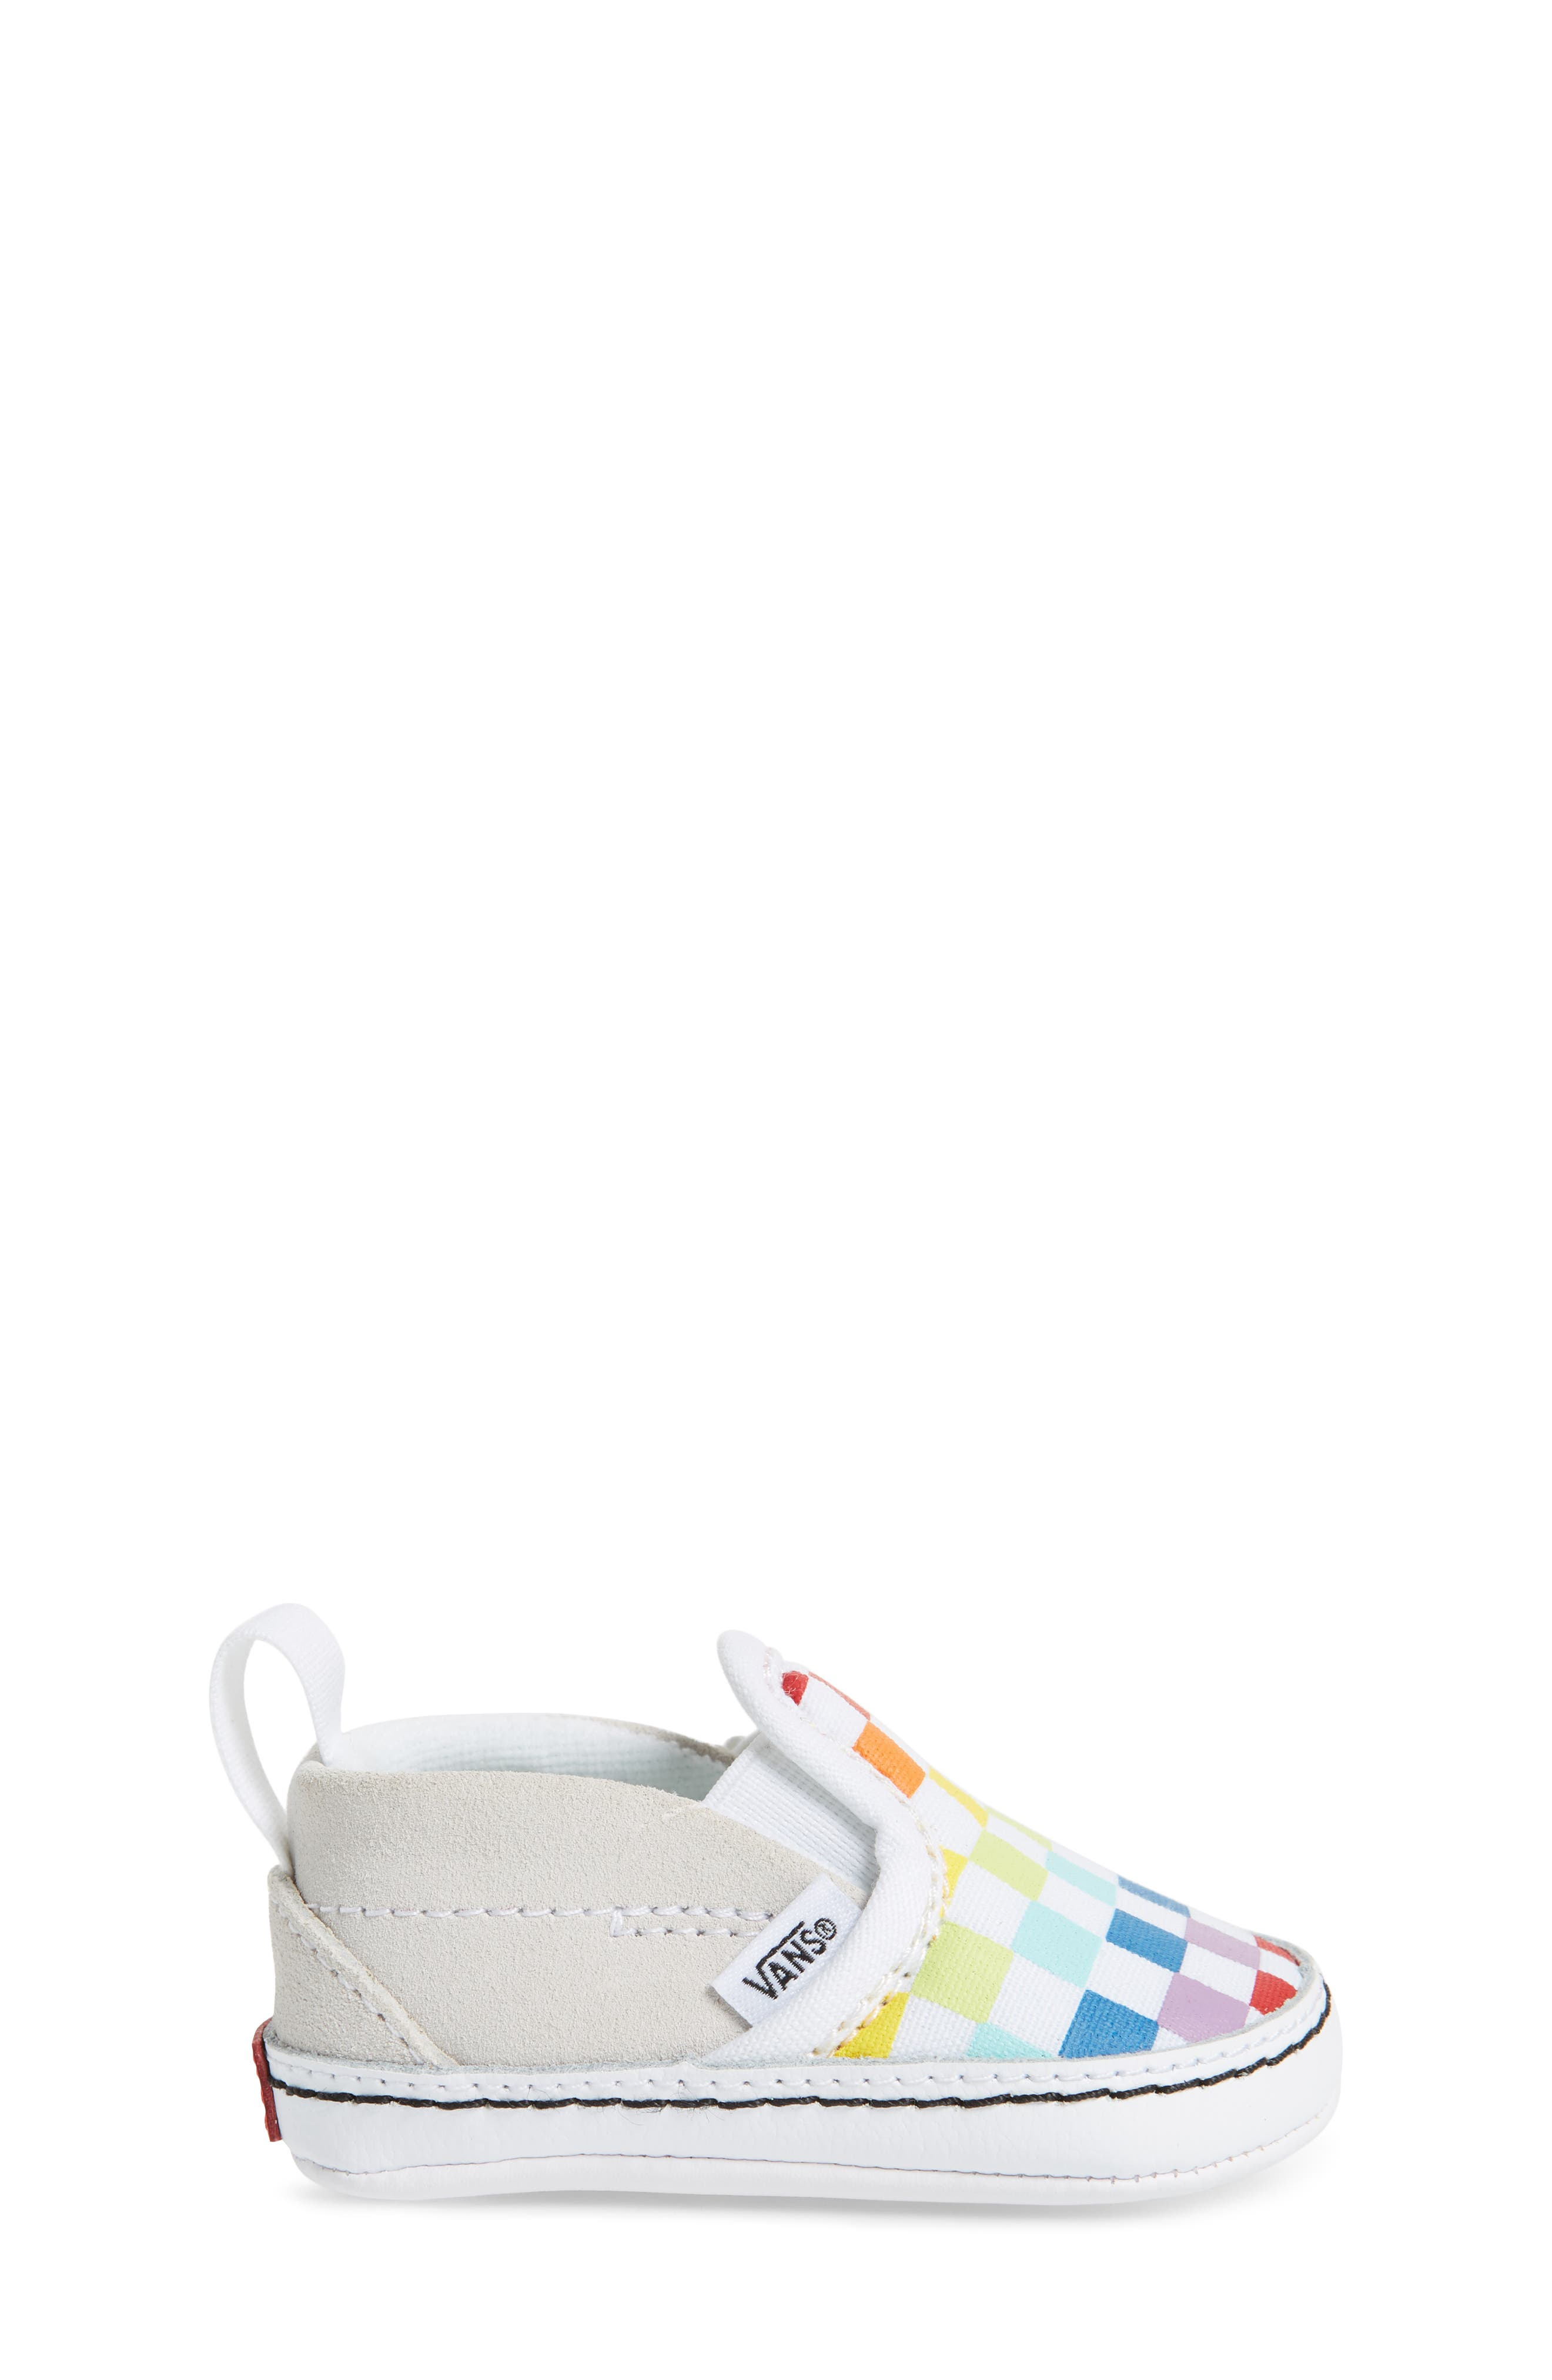 VANS, Slip-On Crib Shoe, Alternate thumbnail 3, color, CHECKERBOARD RAINBOW/ WHITE